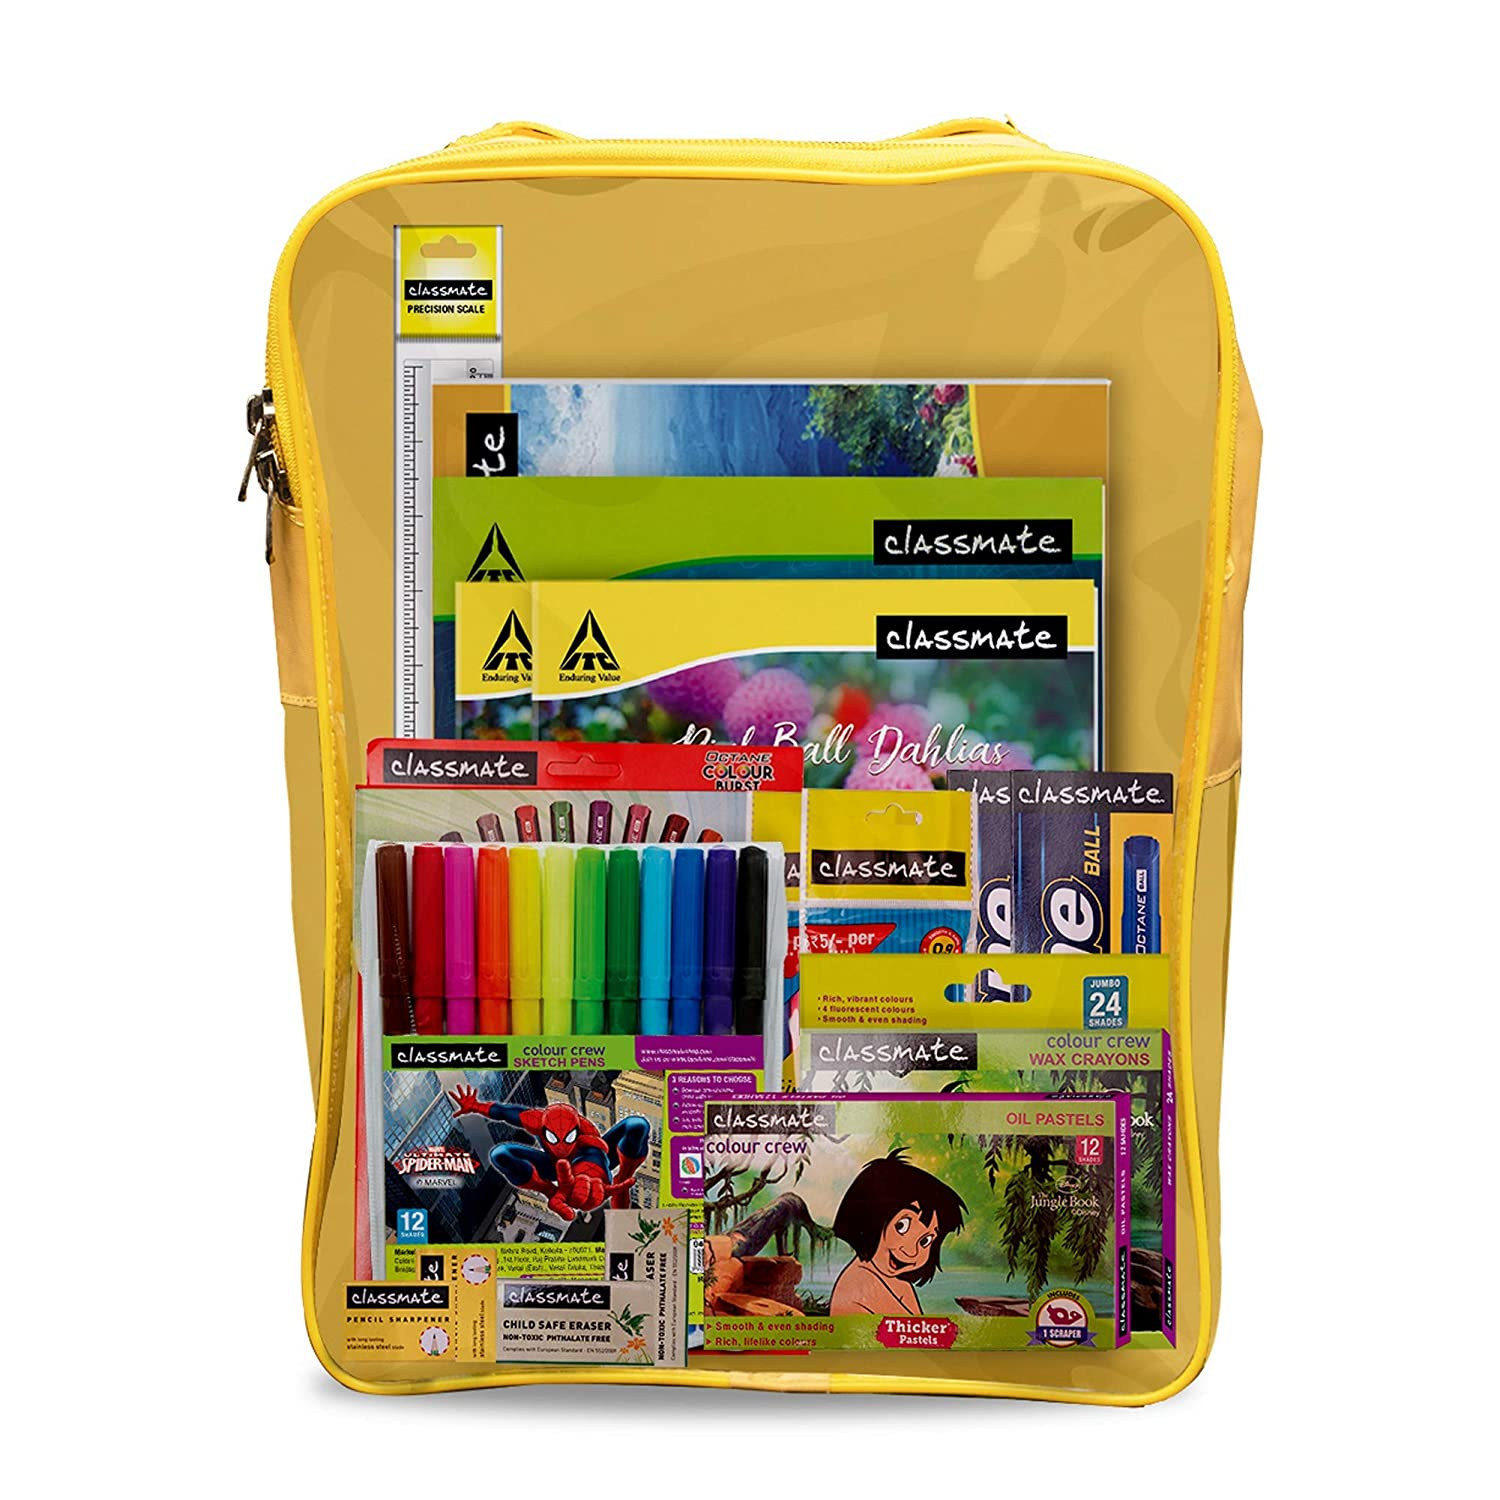 Stationery & Office Supplies: Up to 70% off